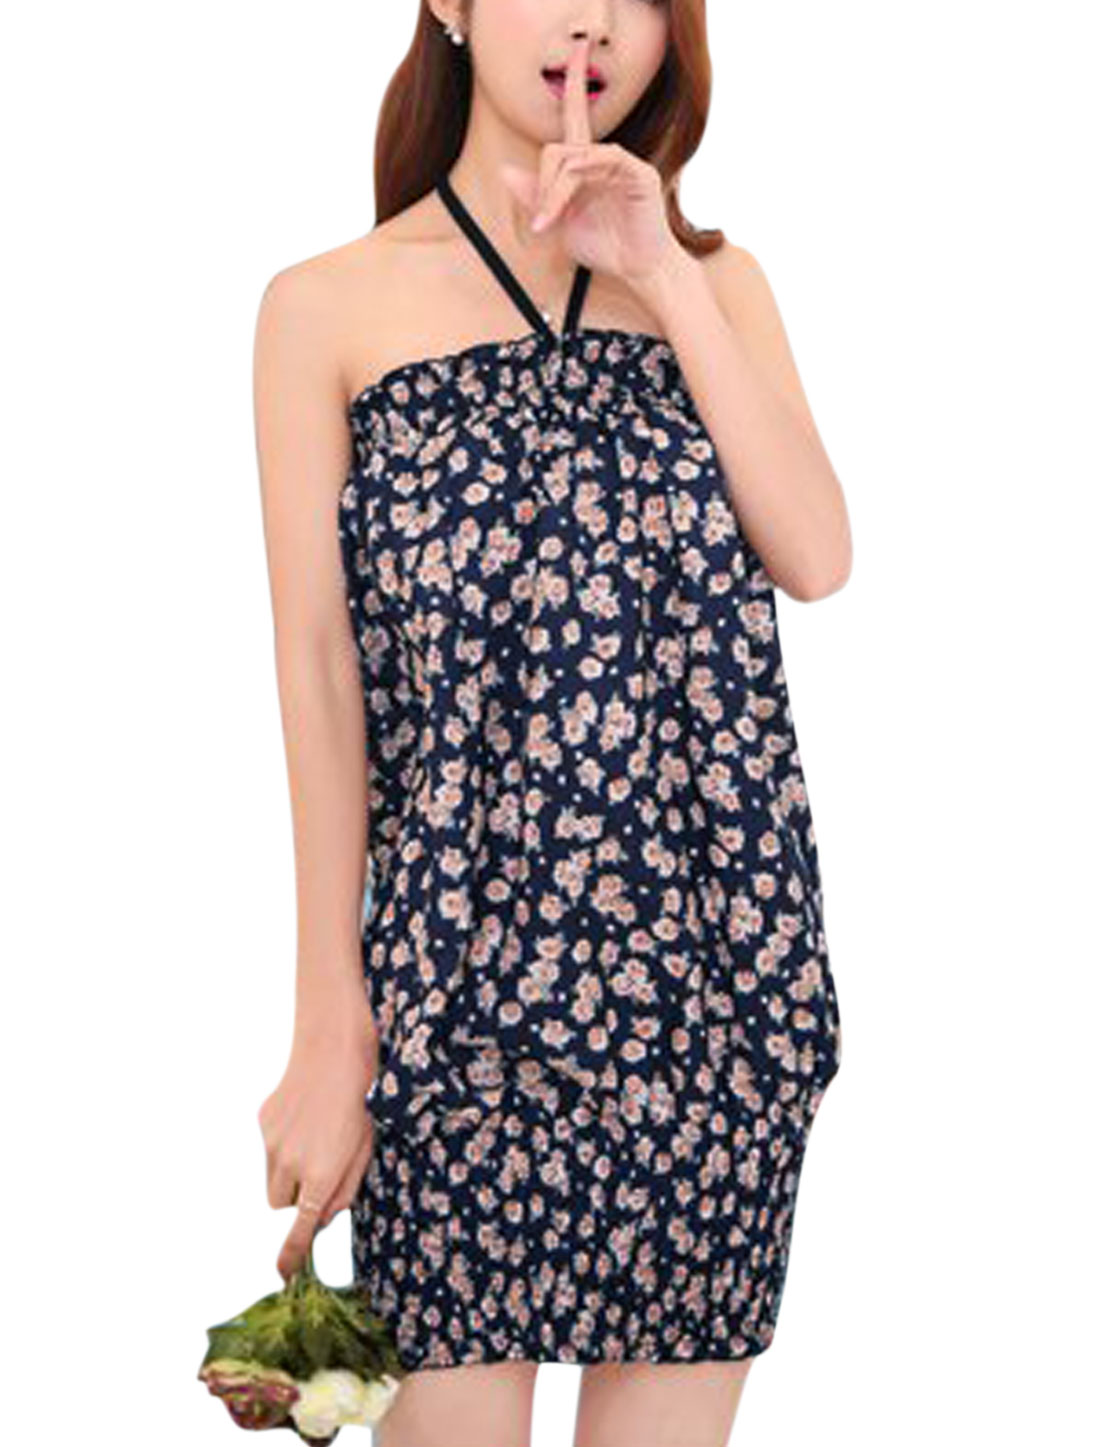 Ladies Halter Neck Sleeveless Elastic Hem Floral Dress Navy Blue S